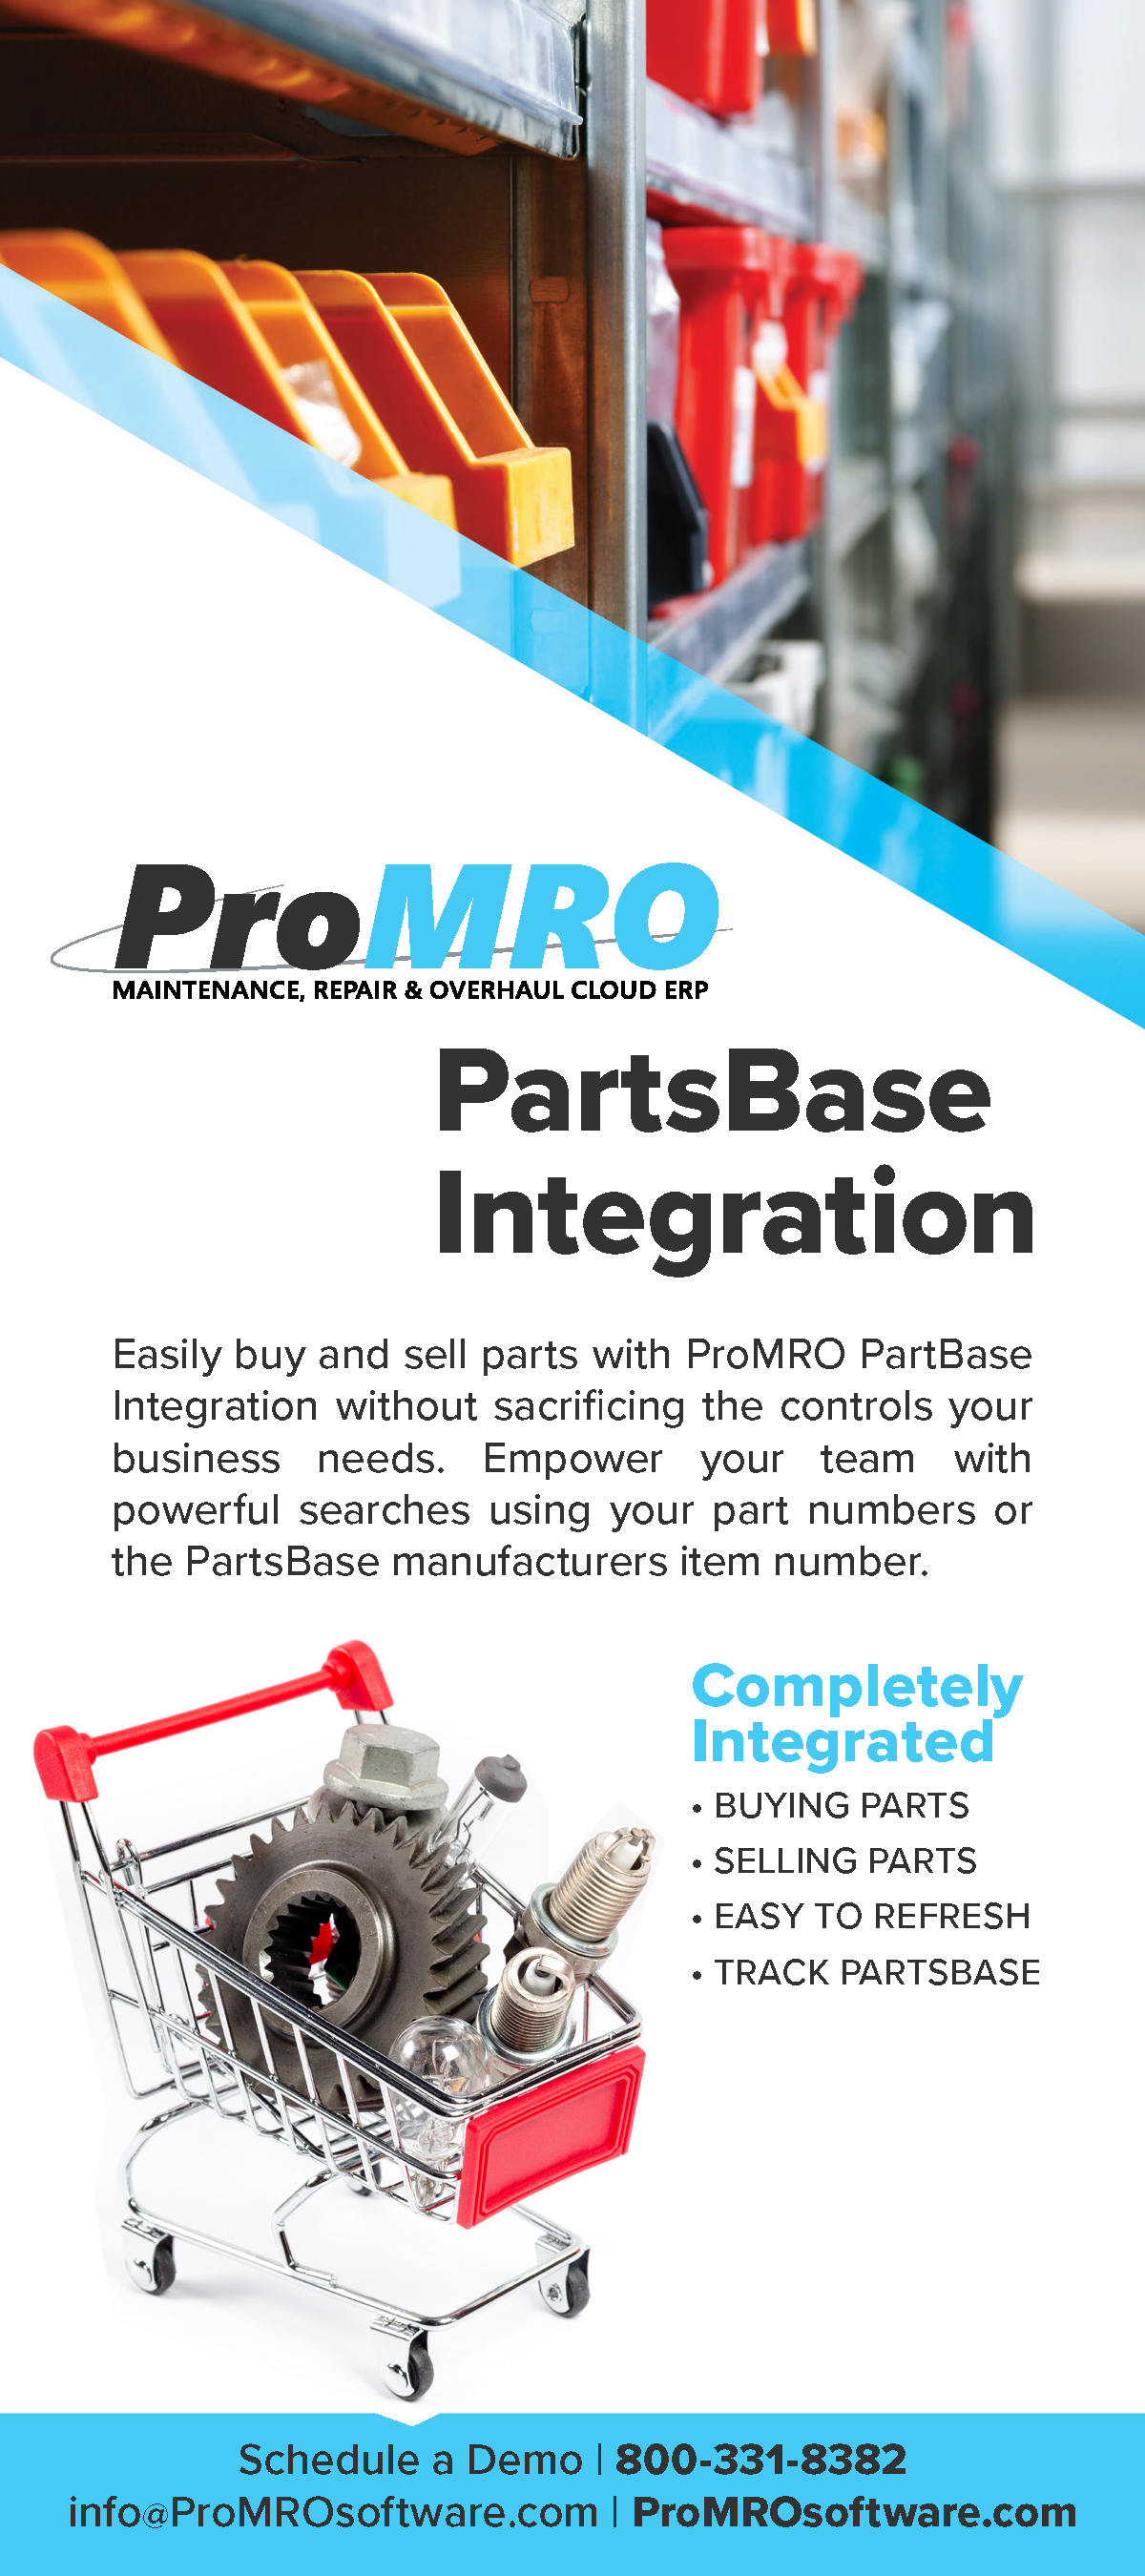 PartsBase Integration to ERP